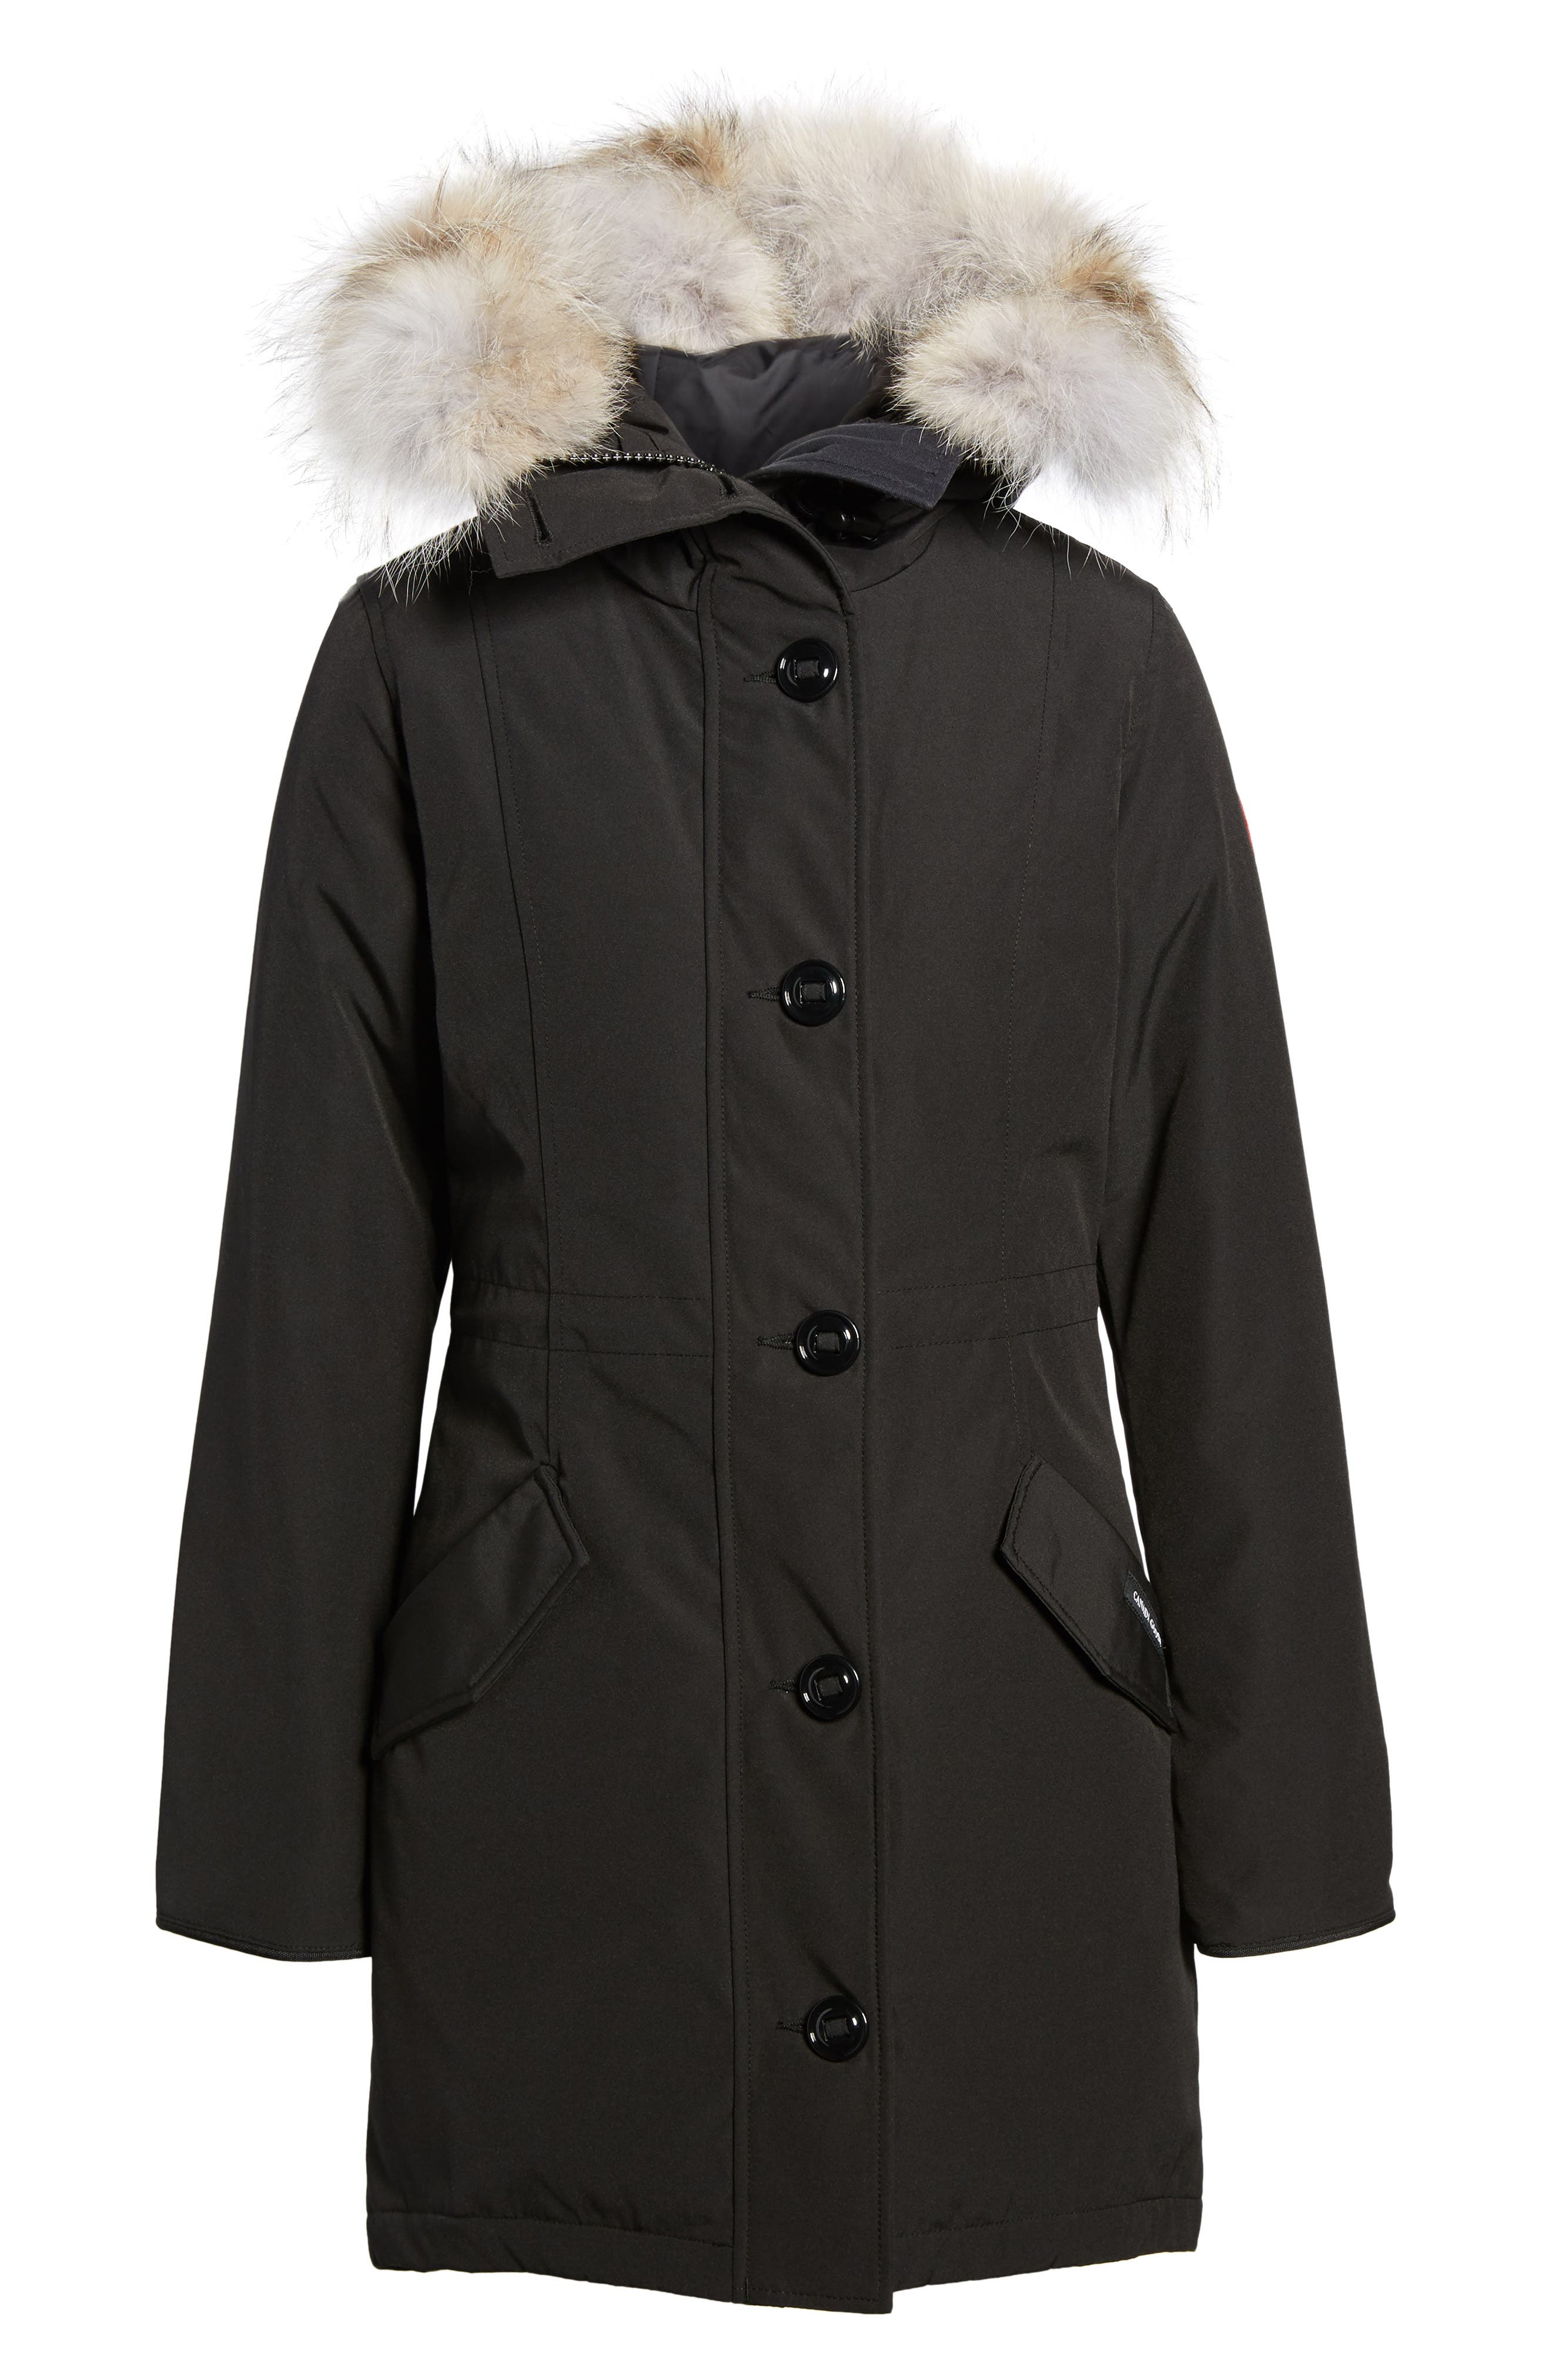 Rossclair Genuine Coyote Fur Trim Down Parka,                             Alternate thumbnail 2, color,                             BLACK